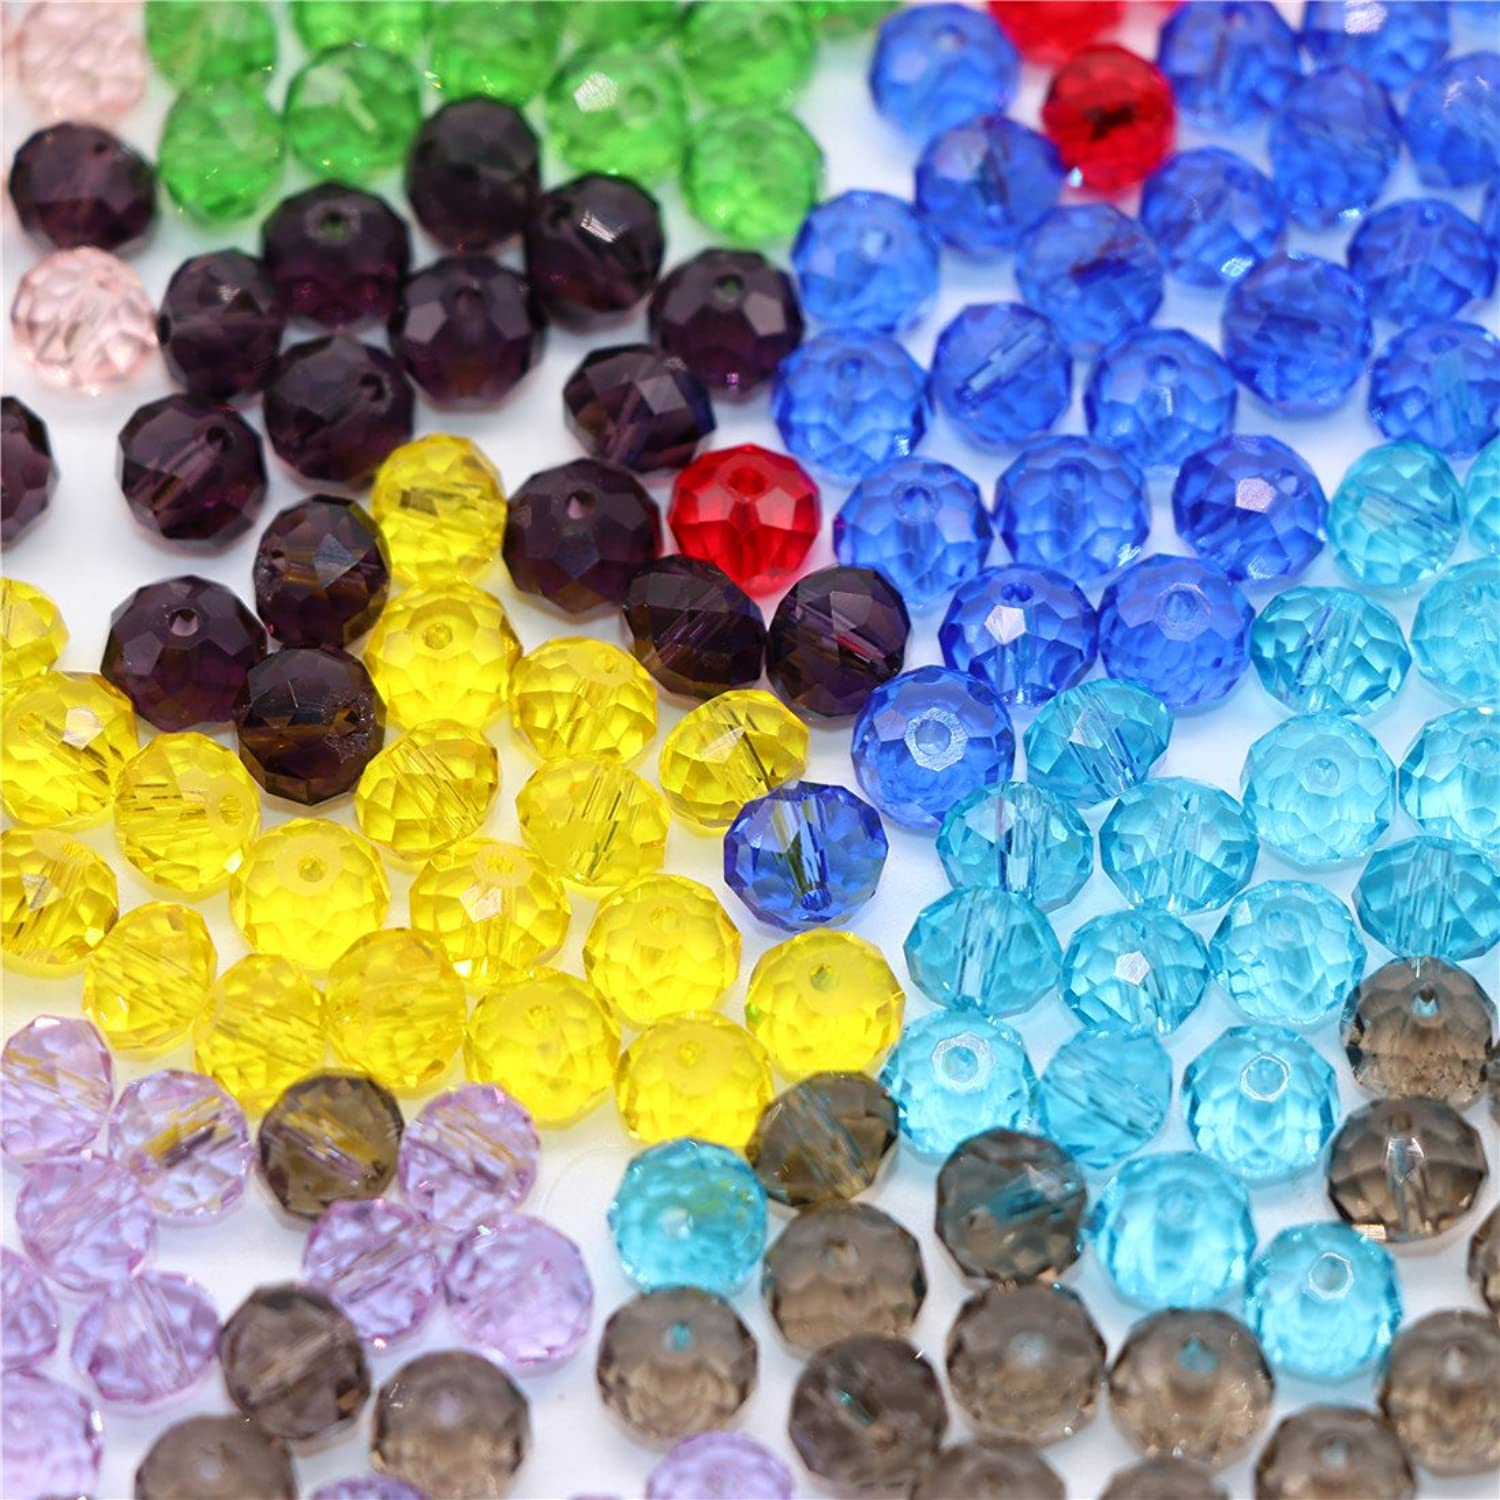 Waltz & F 4mm10 colors 1000pcs MIX crystal glass beads San catcher material parts colorful handicraft handmade accessories handmade parts Goods